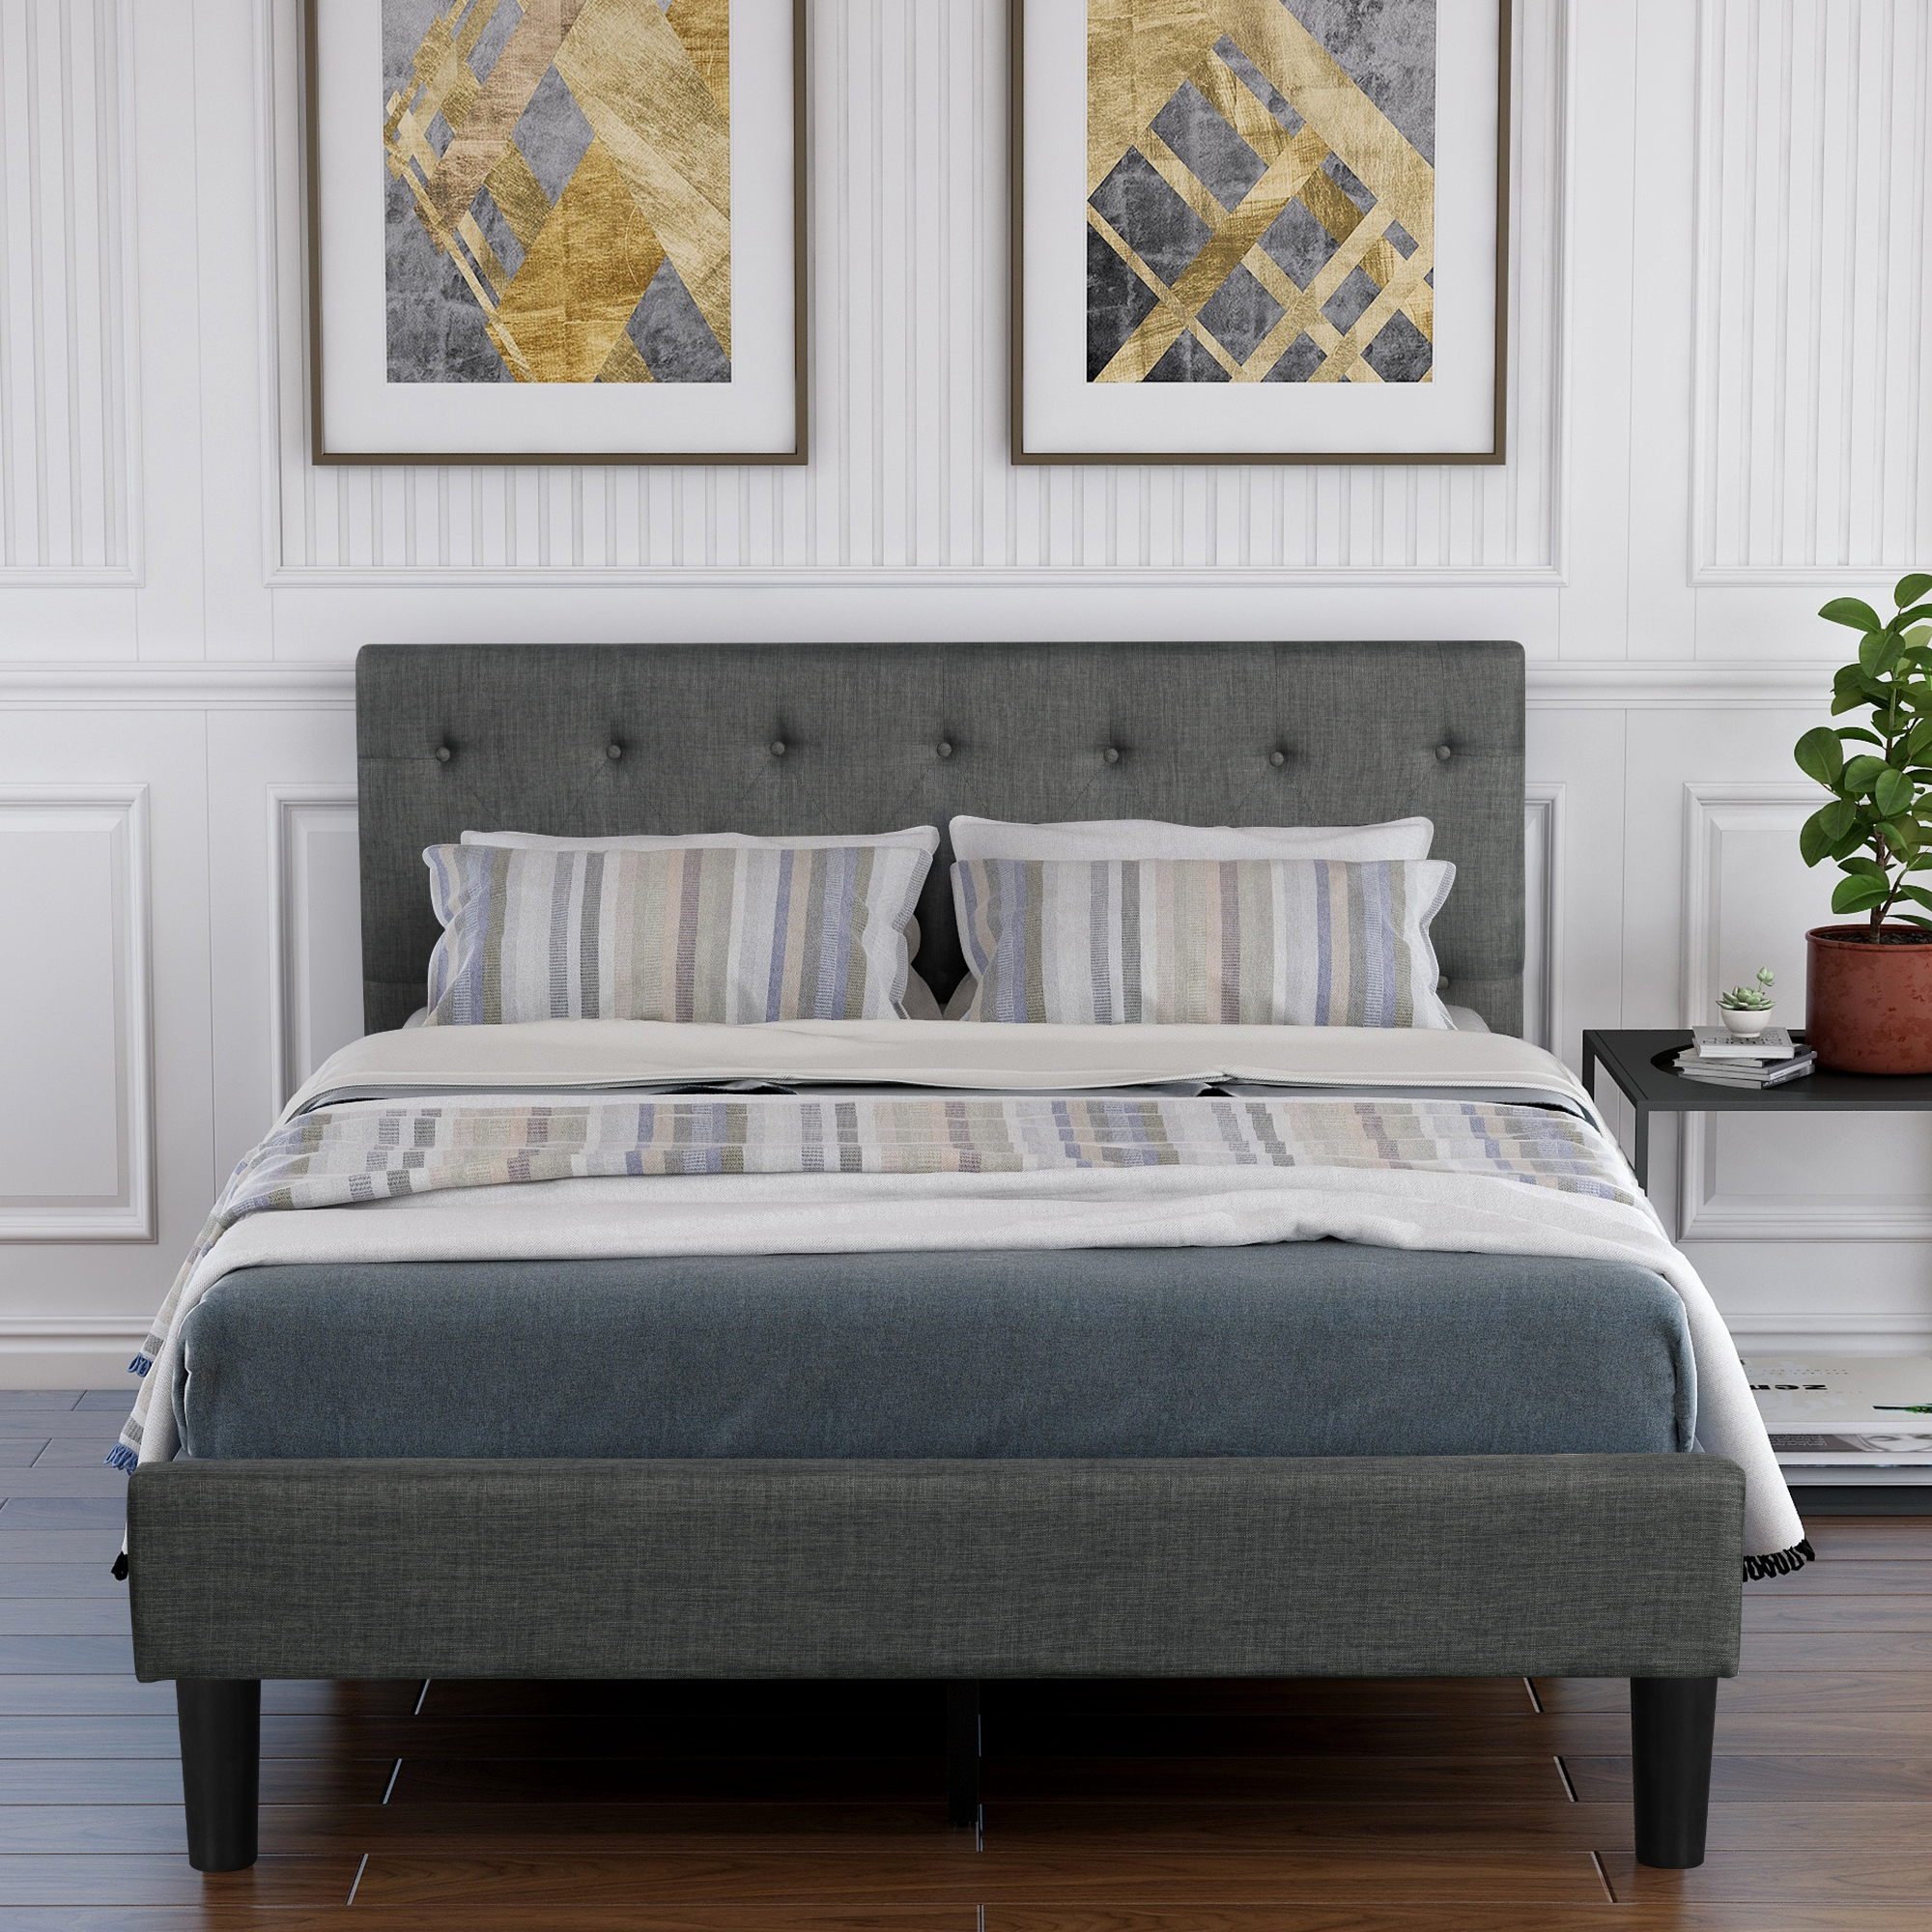 clearance queen bed frames for kids boys girls heavy on walmart bedroom furniture clearance id=74552